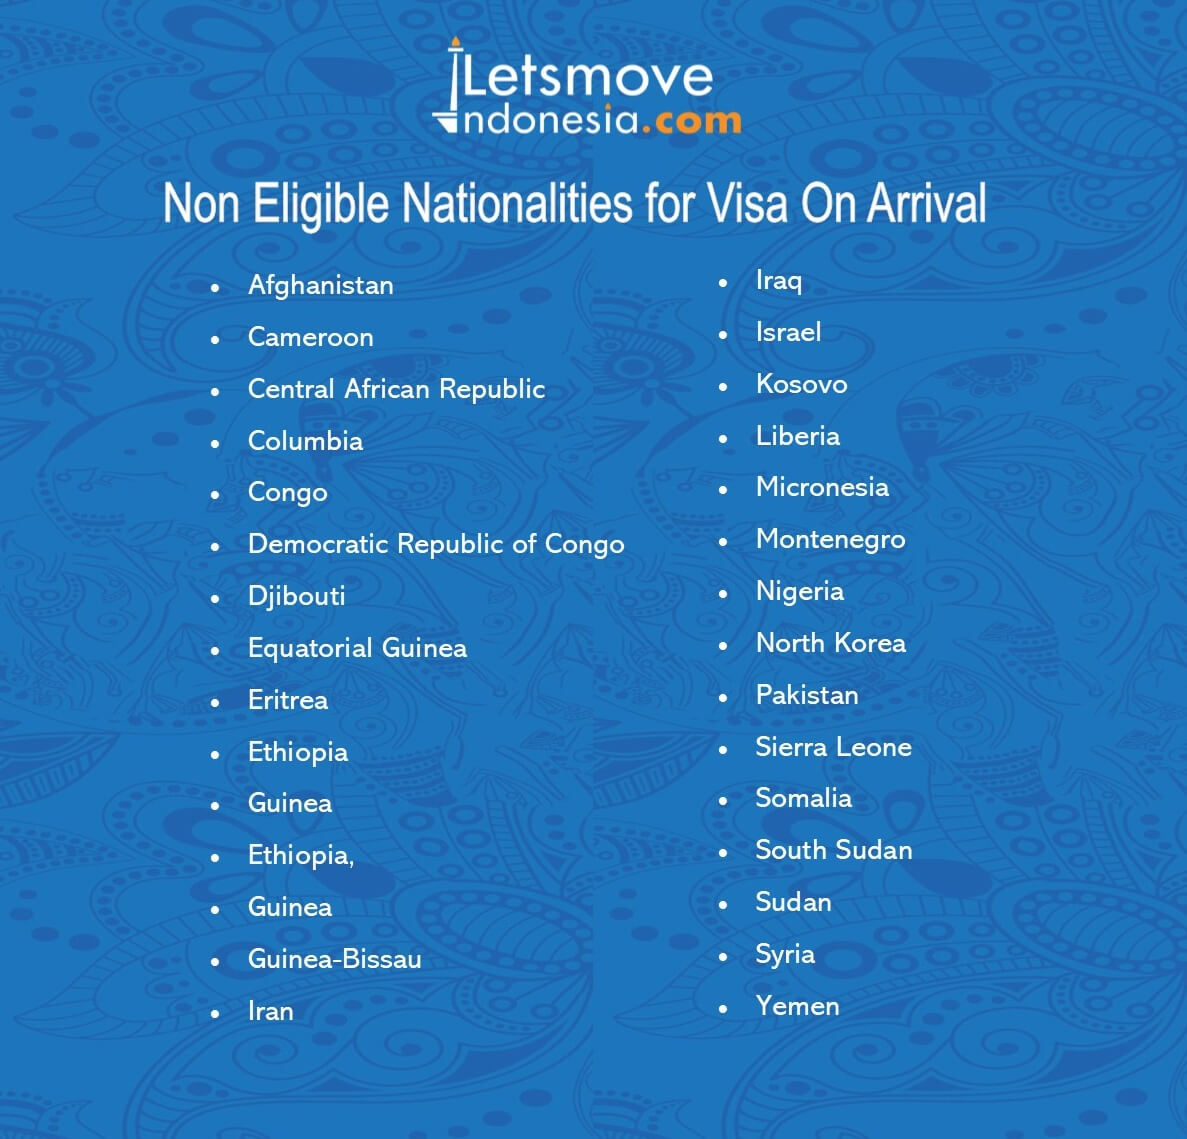 Visa on Arrival | VOA Non Eligible Nationalities